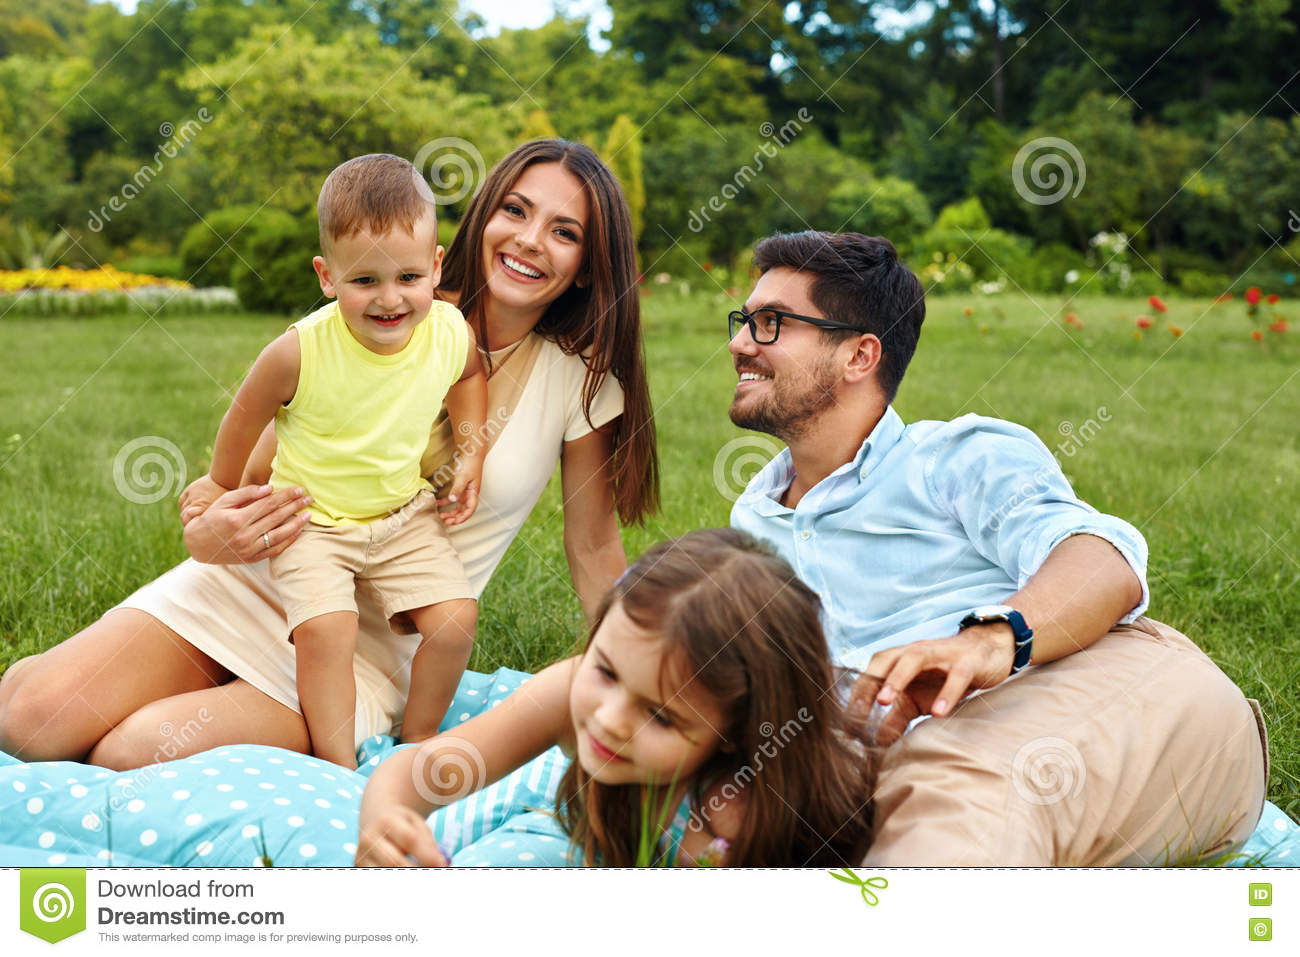 e044c130b06 Happy Young Family In Park. Parents And Kids Having Fun